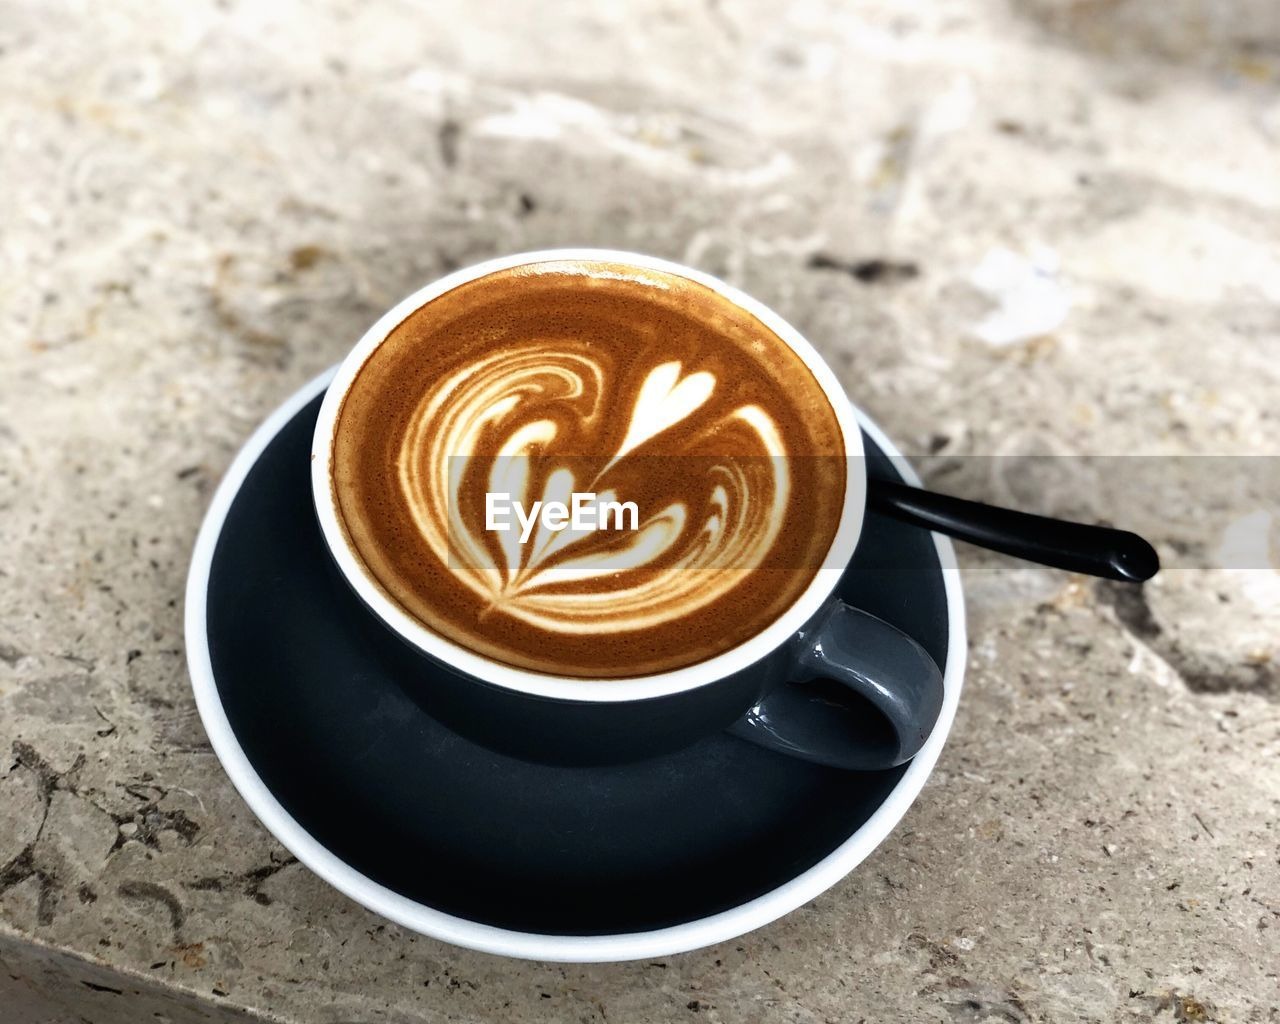 coffee, coffee - drink, drink, coffee cup, refreshment, cup, mug, food and drink, still life, cappuccino, crockery, saucer, frothy drink, hot drink, froth art, high angle view, freshness, table, spoon, close-up, latte, no people, non-alcoholic beverage, froth, caffeine